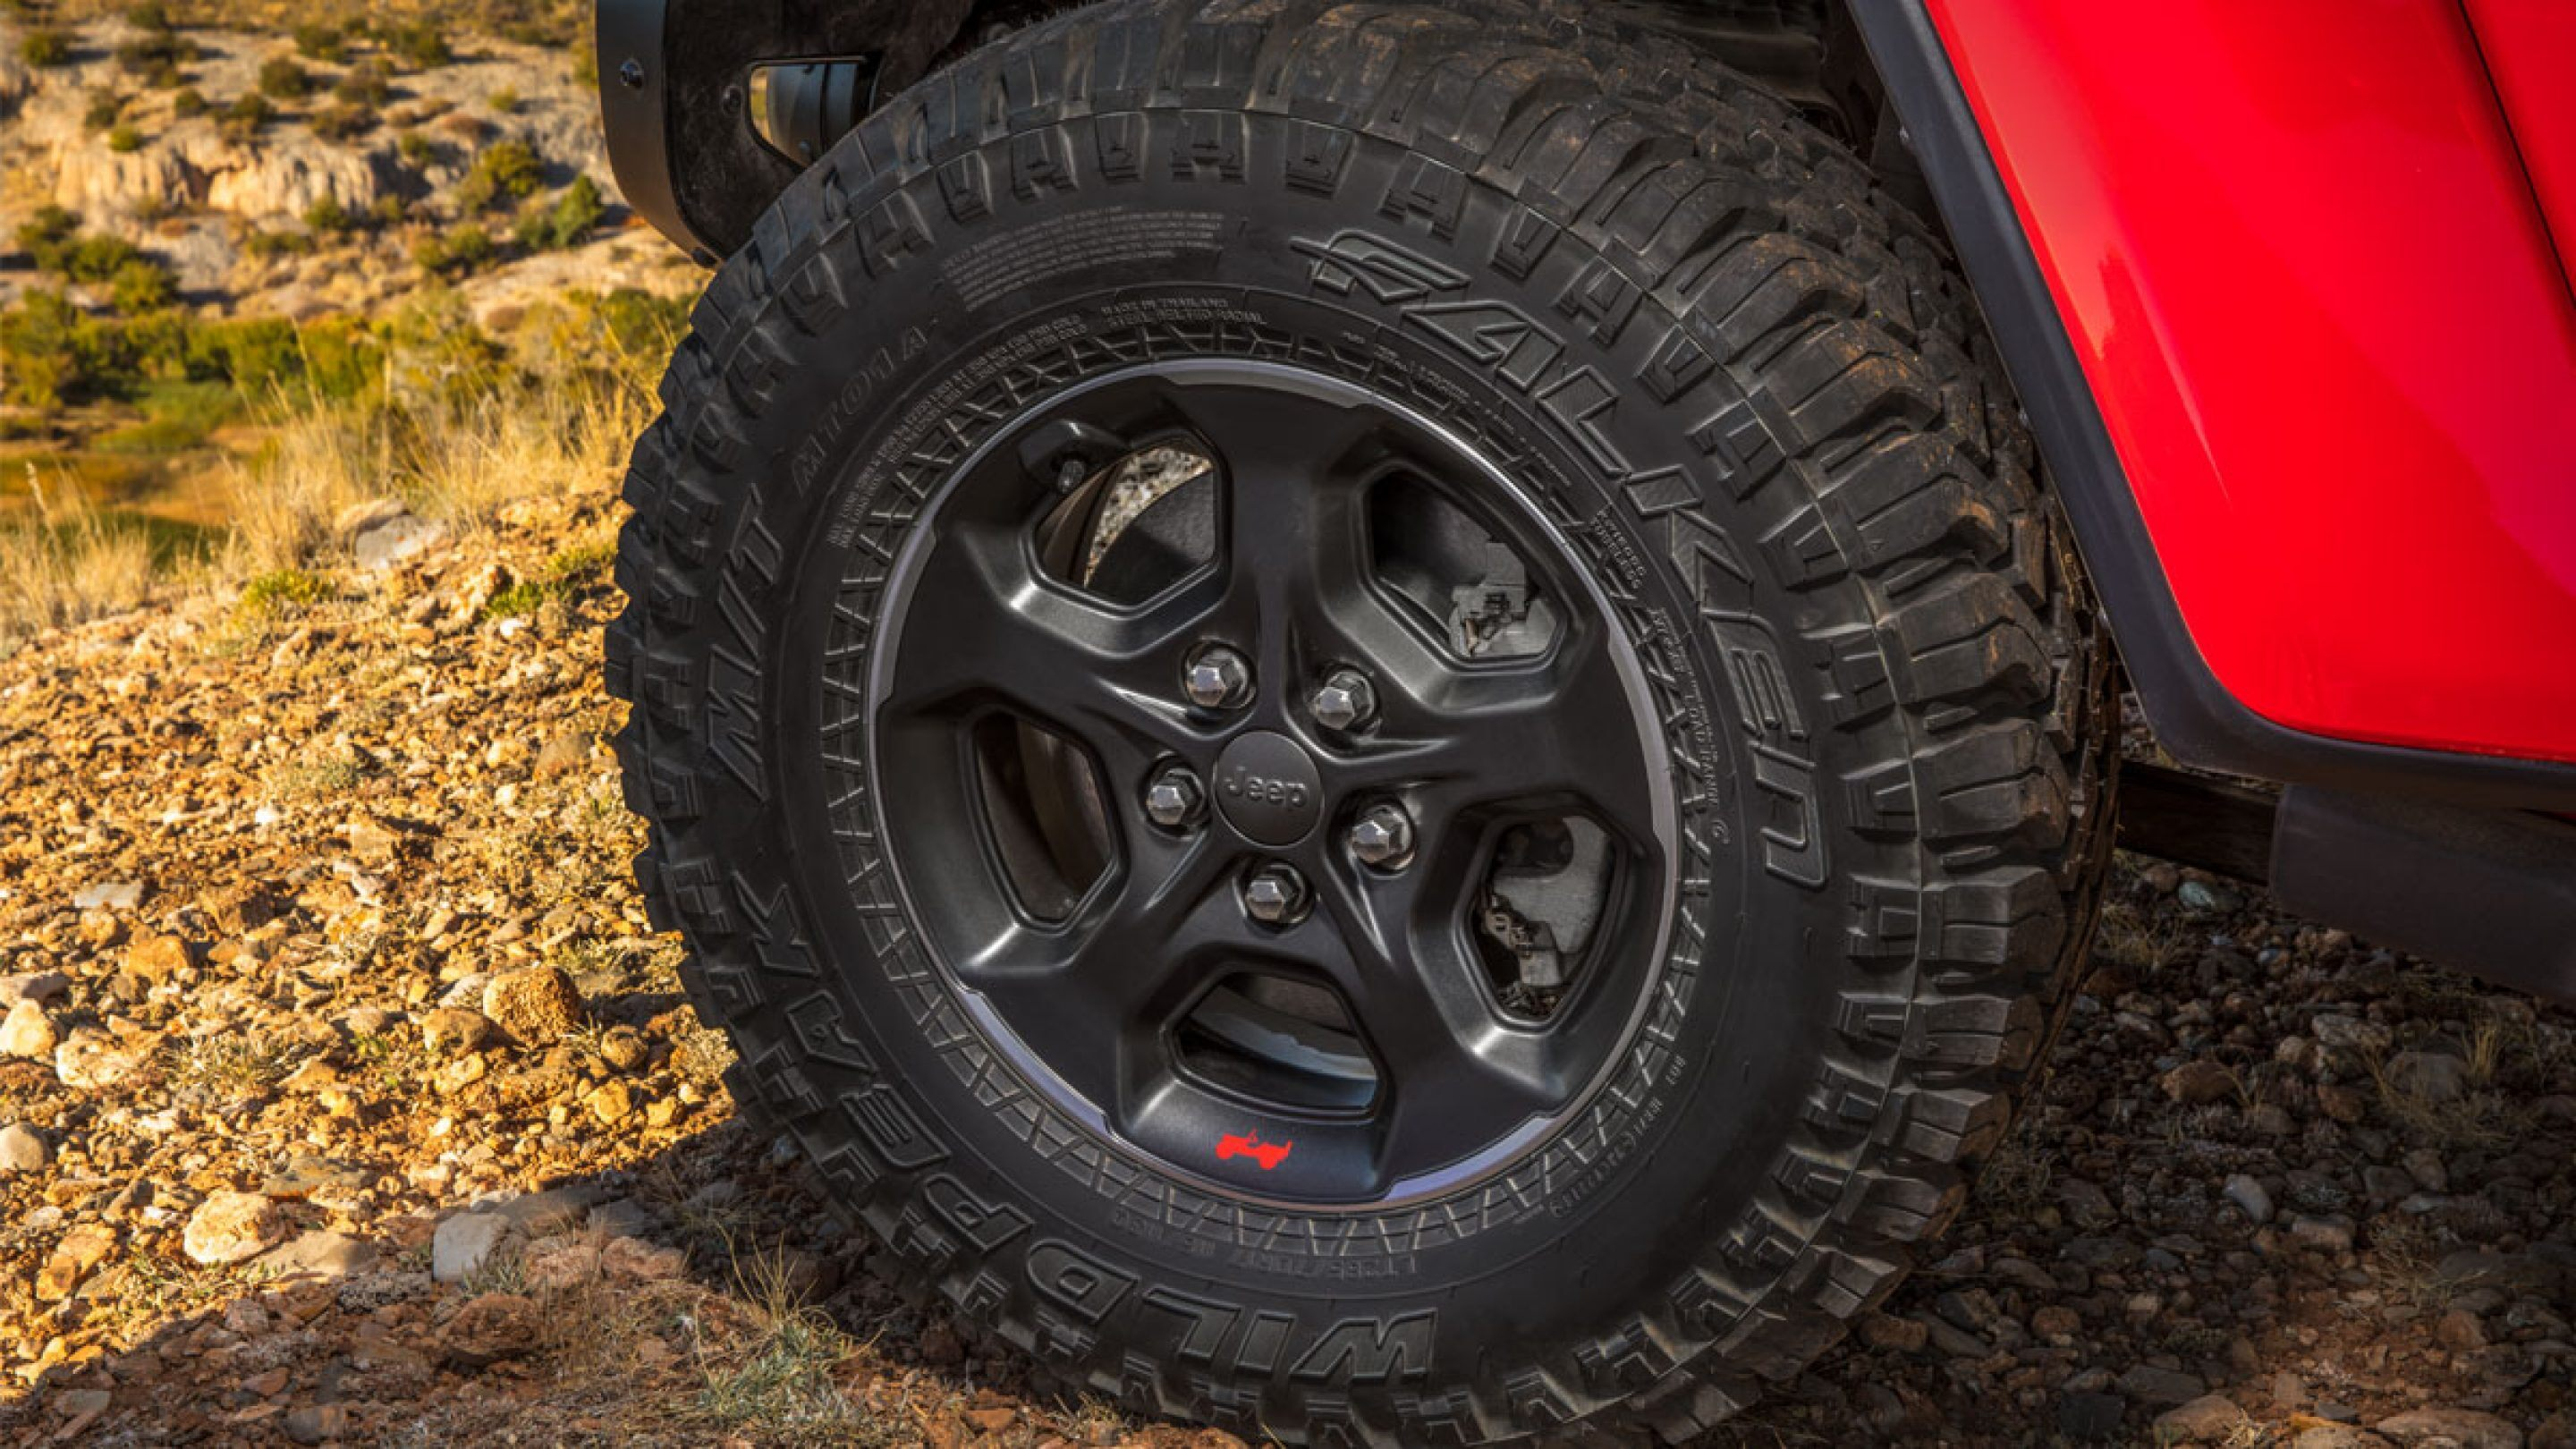 Wheels on the 2020 Jeep Gladiator